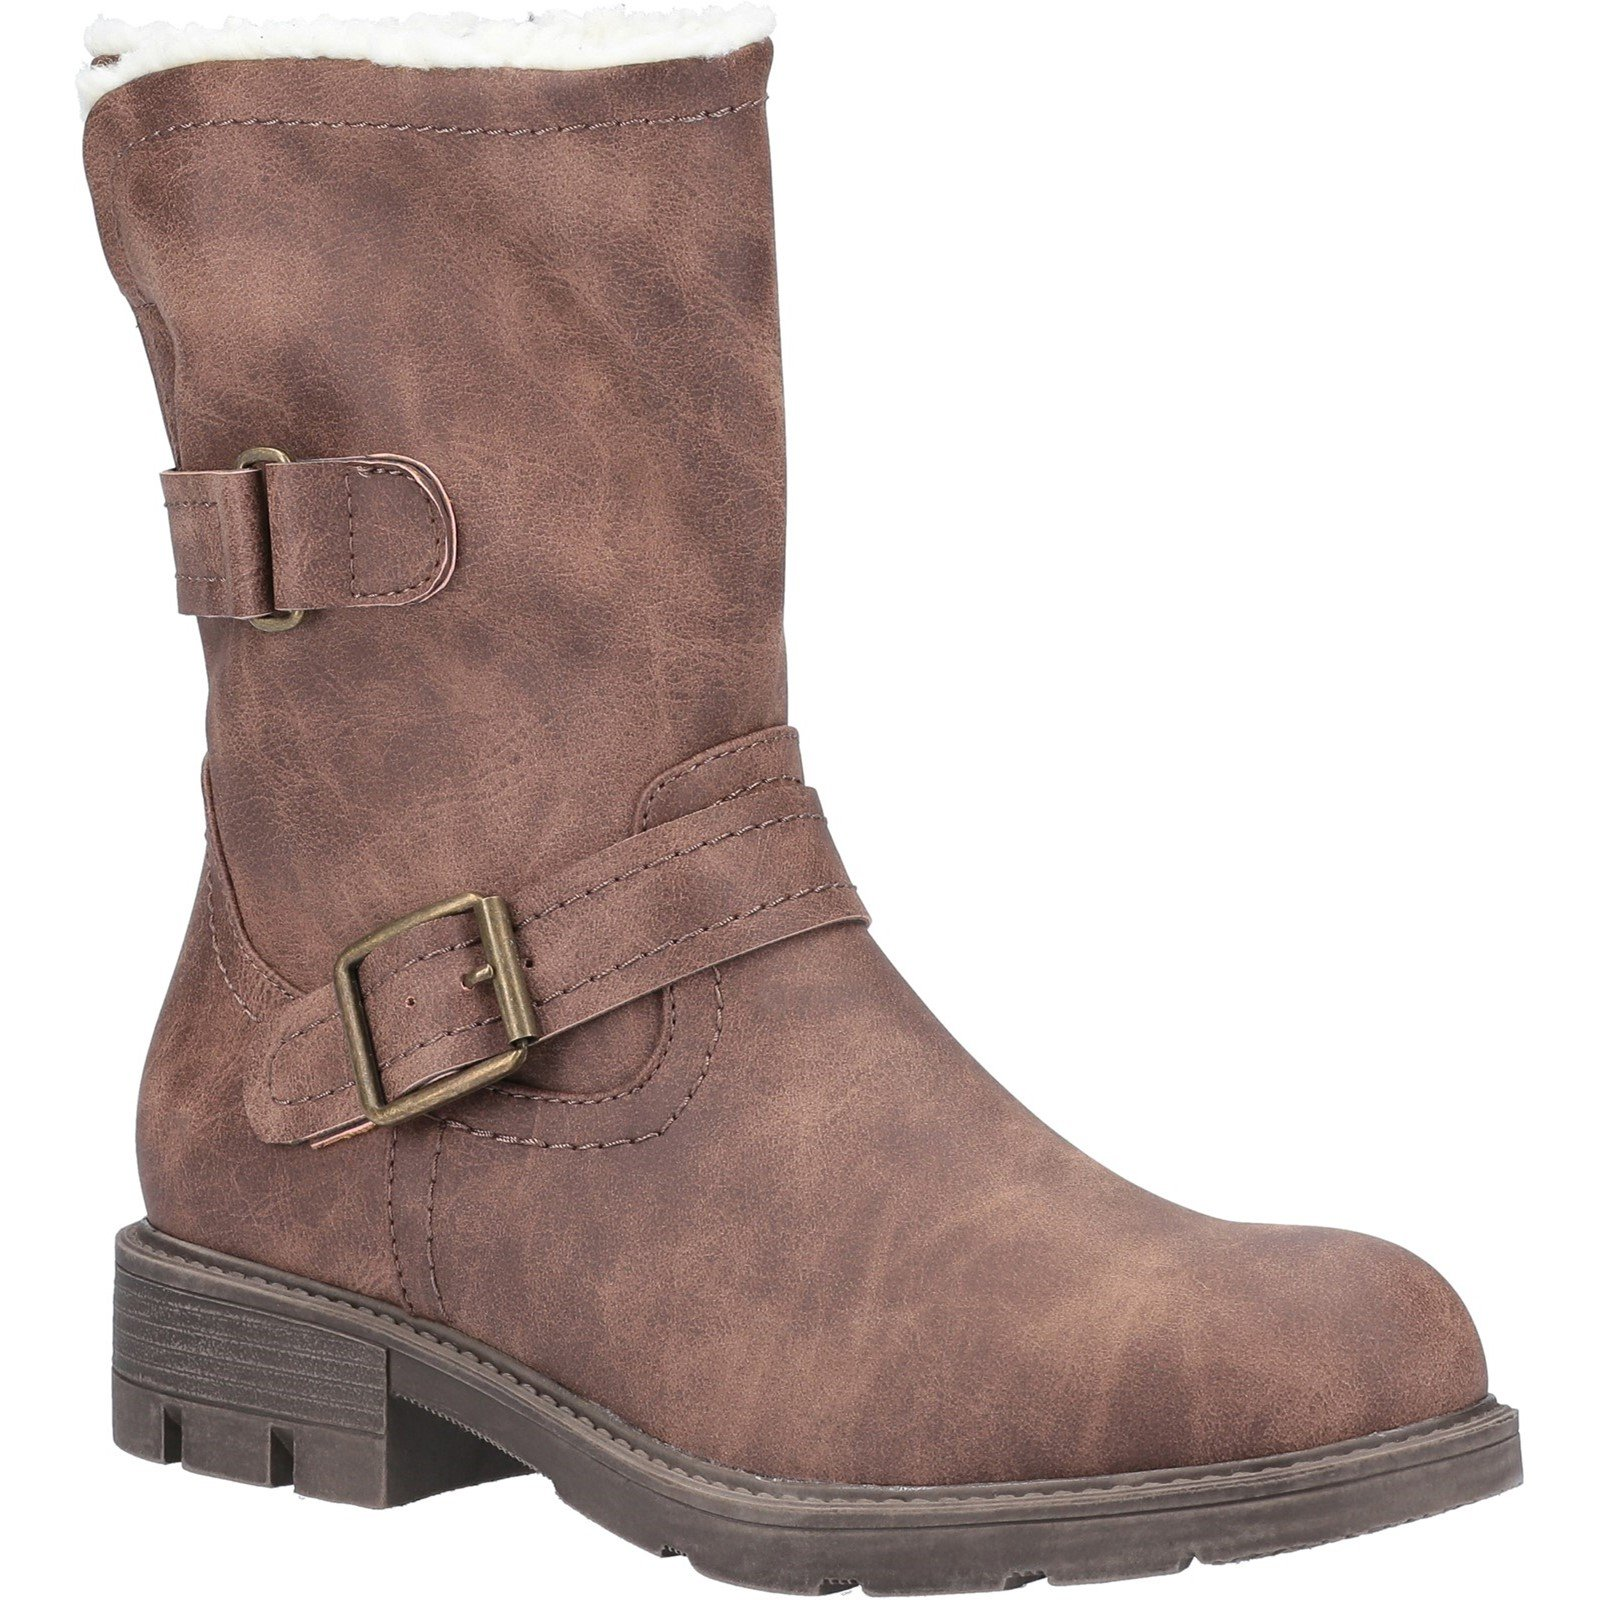 Divaz Women's Whitney Fur Lined Boot Various Colours 31086 - Brown 3